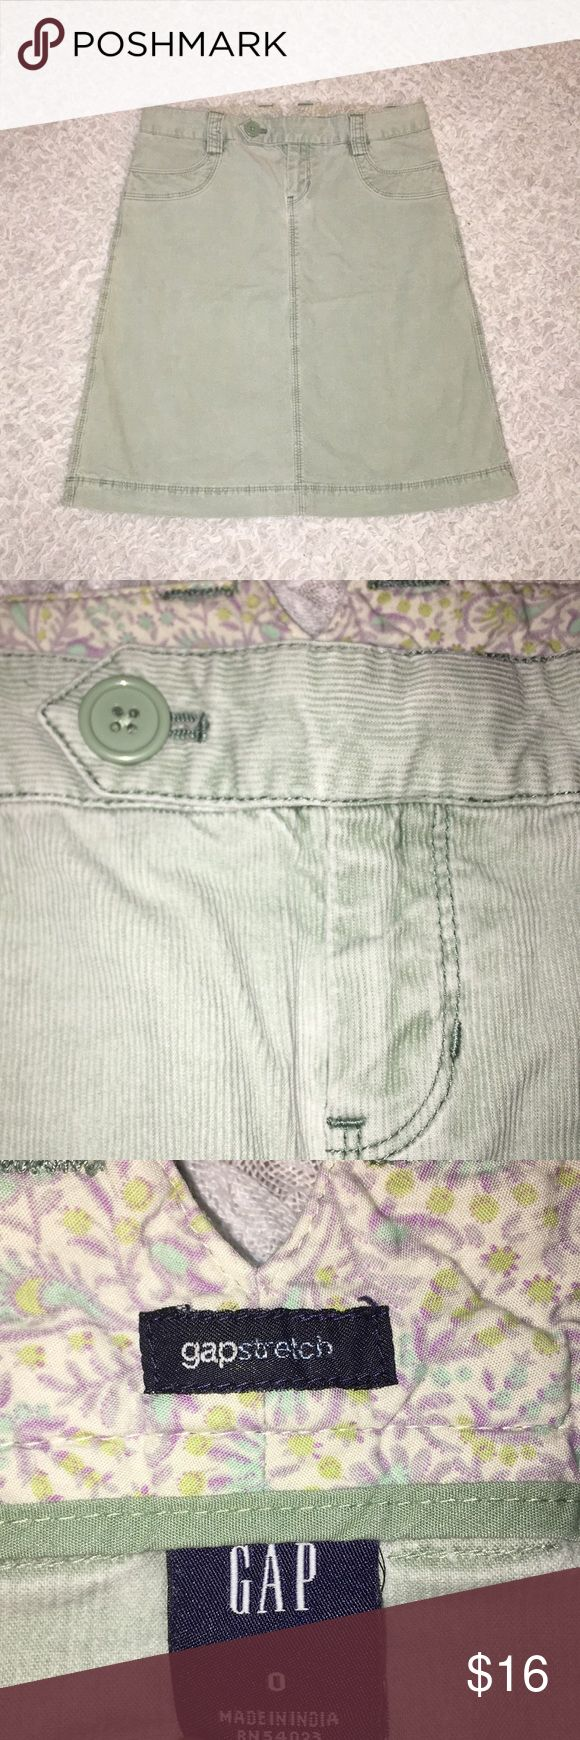 Mint Green GAP Corduroy Skirt Mint Green GAP Corduroy Skirt Great condition  98% cotton 2% spandex GAP Skirts Mini